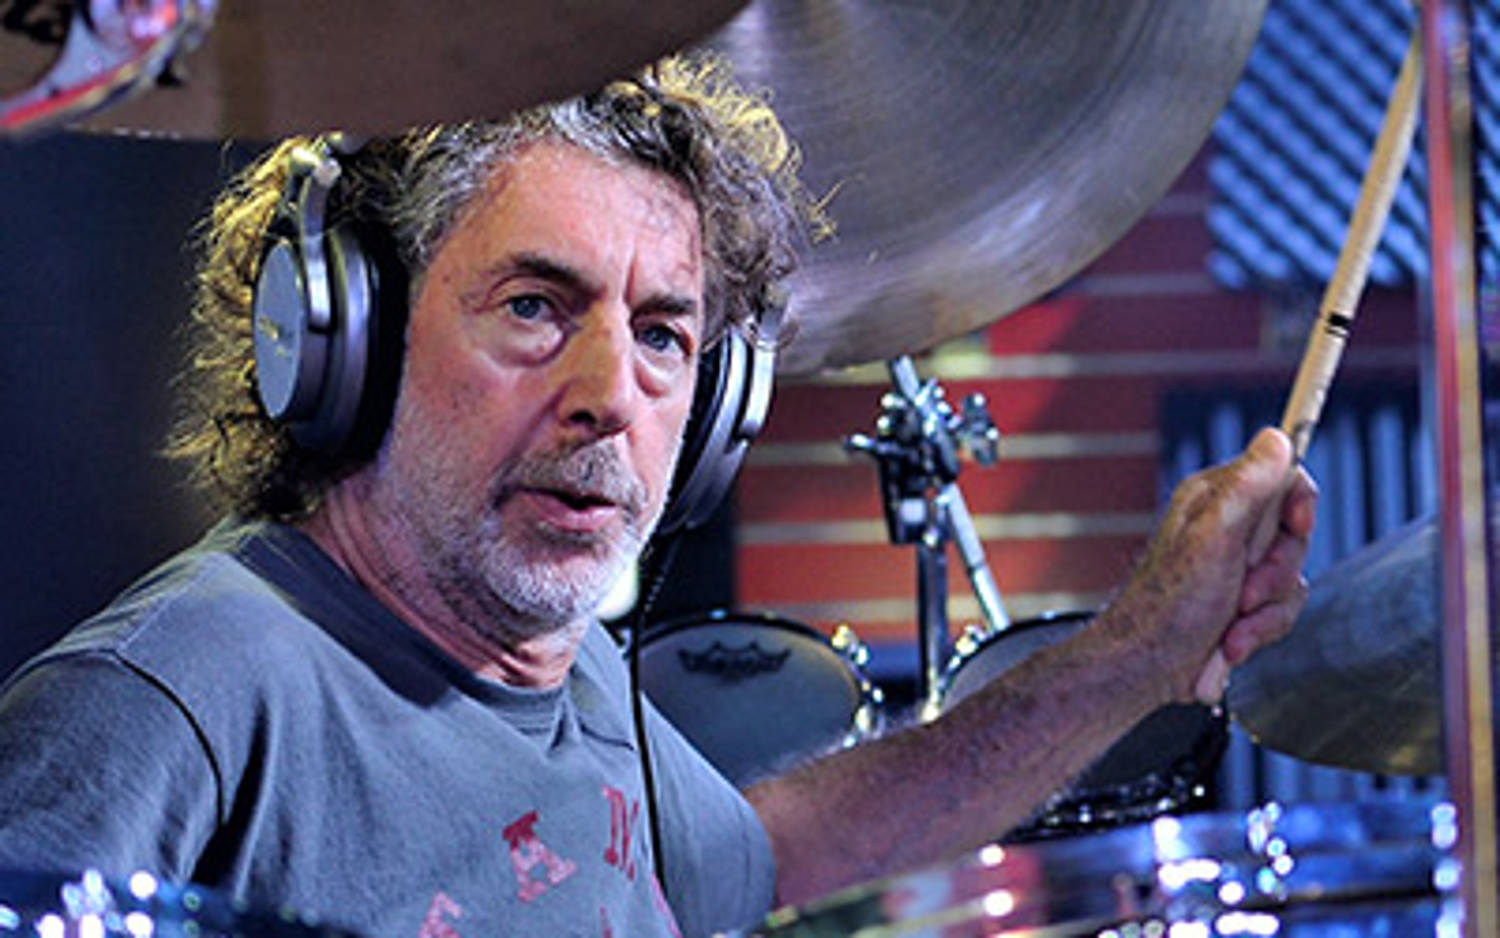 Les images du workshop de Simon Phillips